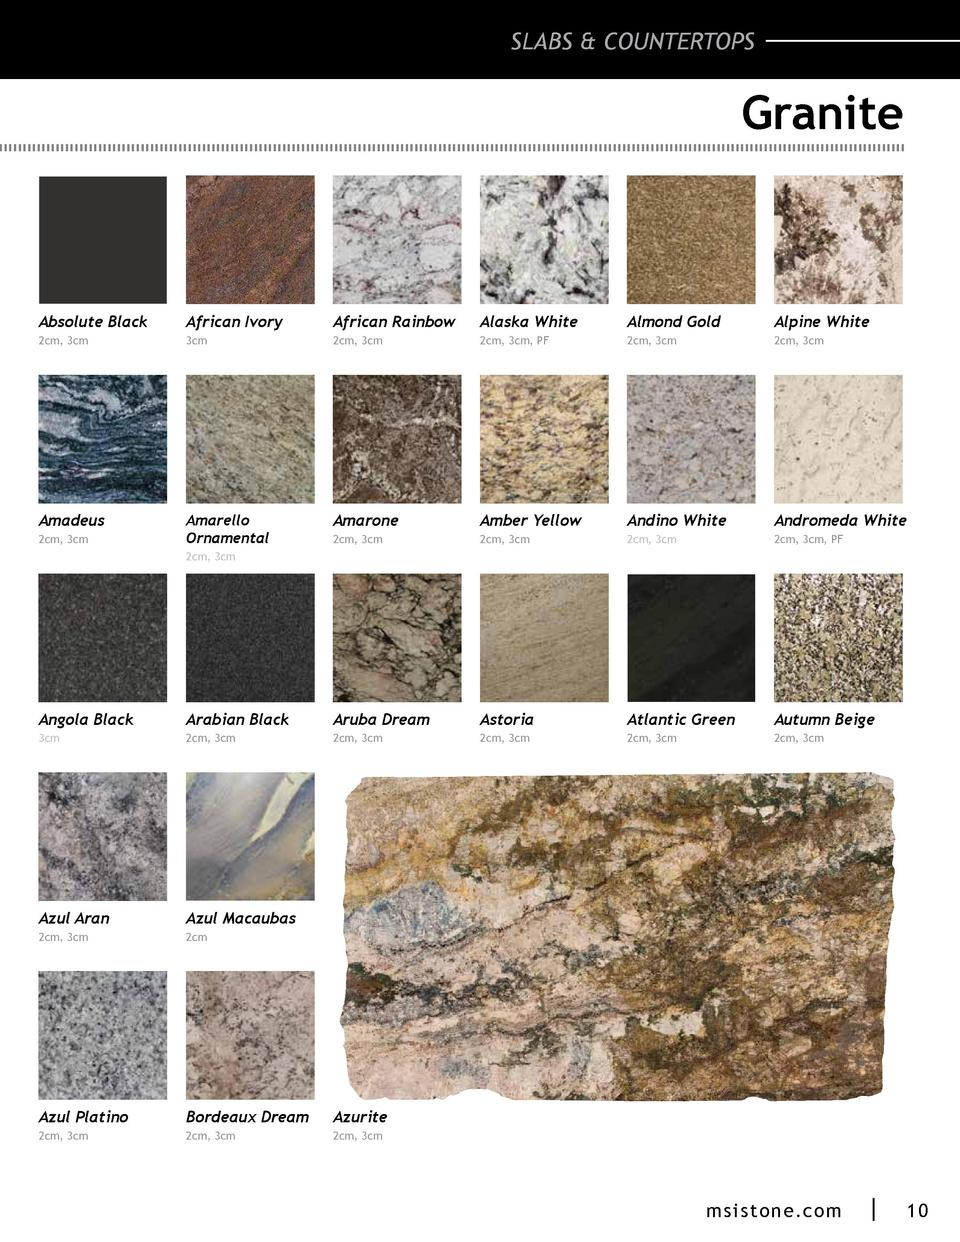 SLABS   COUNTERTOPS  Granite  Absolute Black  African Ivory  African Rainbow  Alaska White  Almond Gold  Alpine White  2cm...